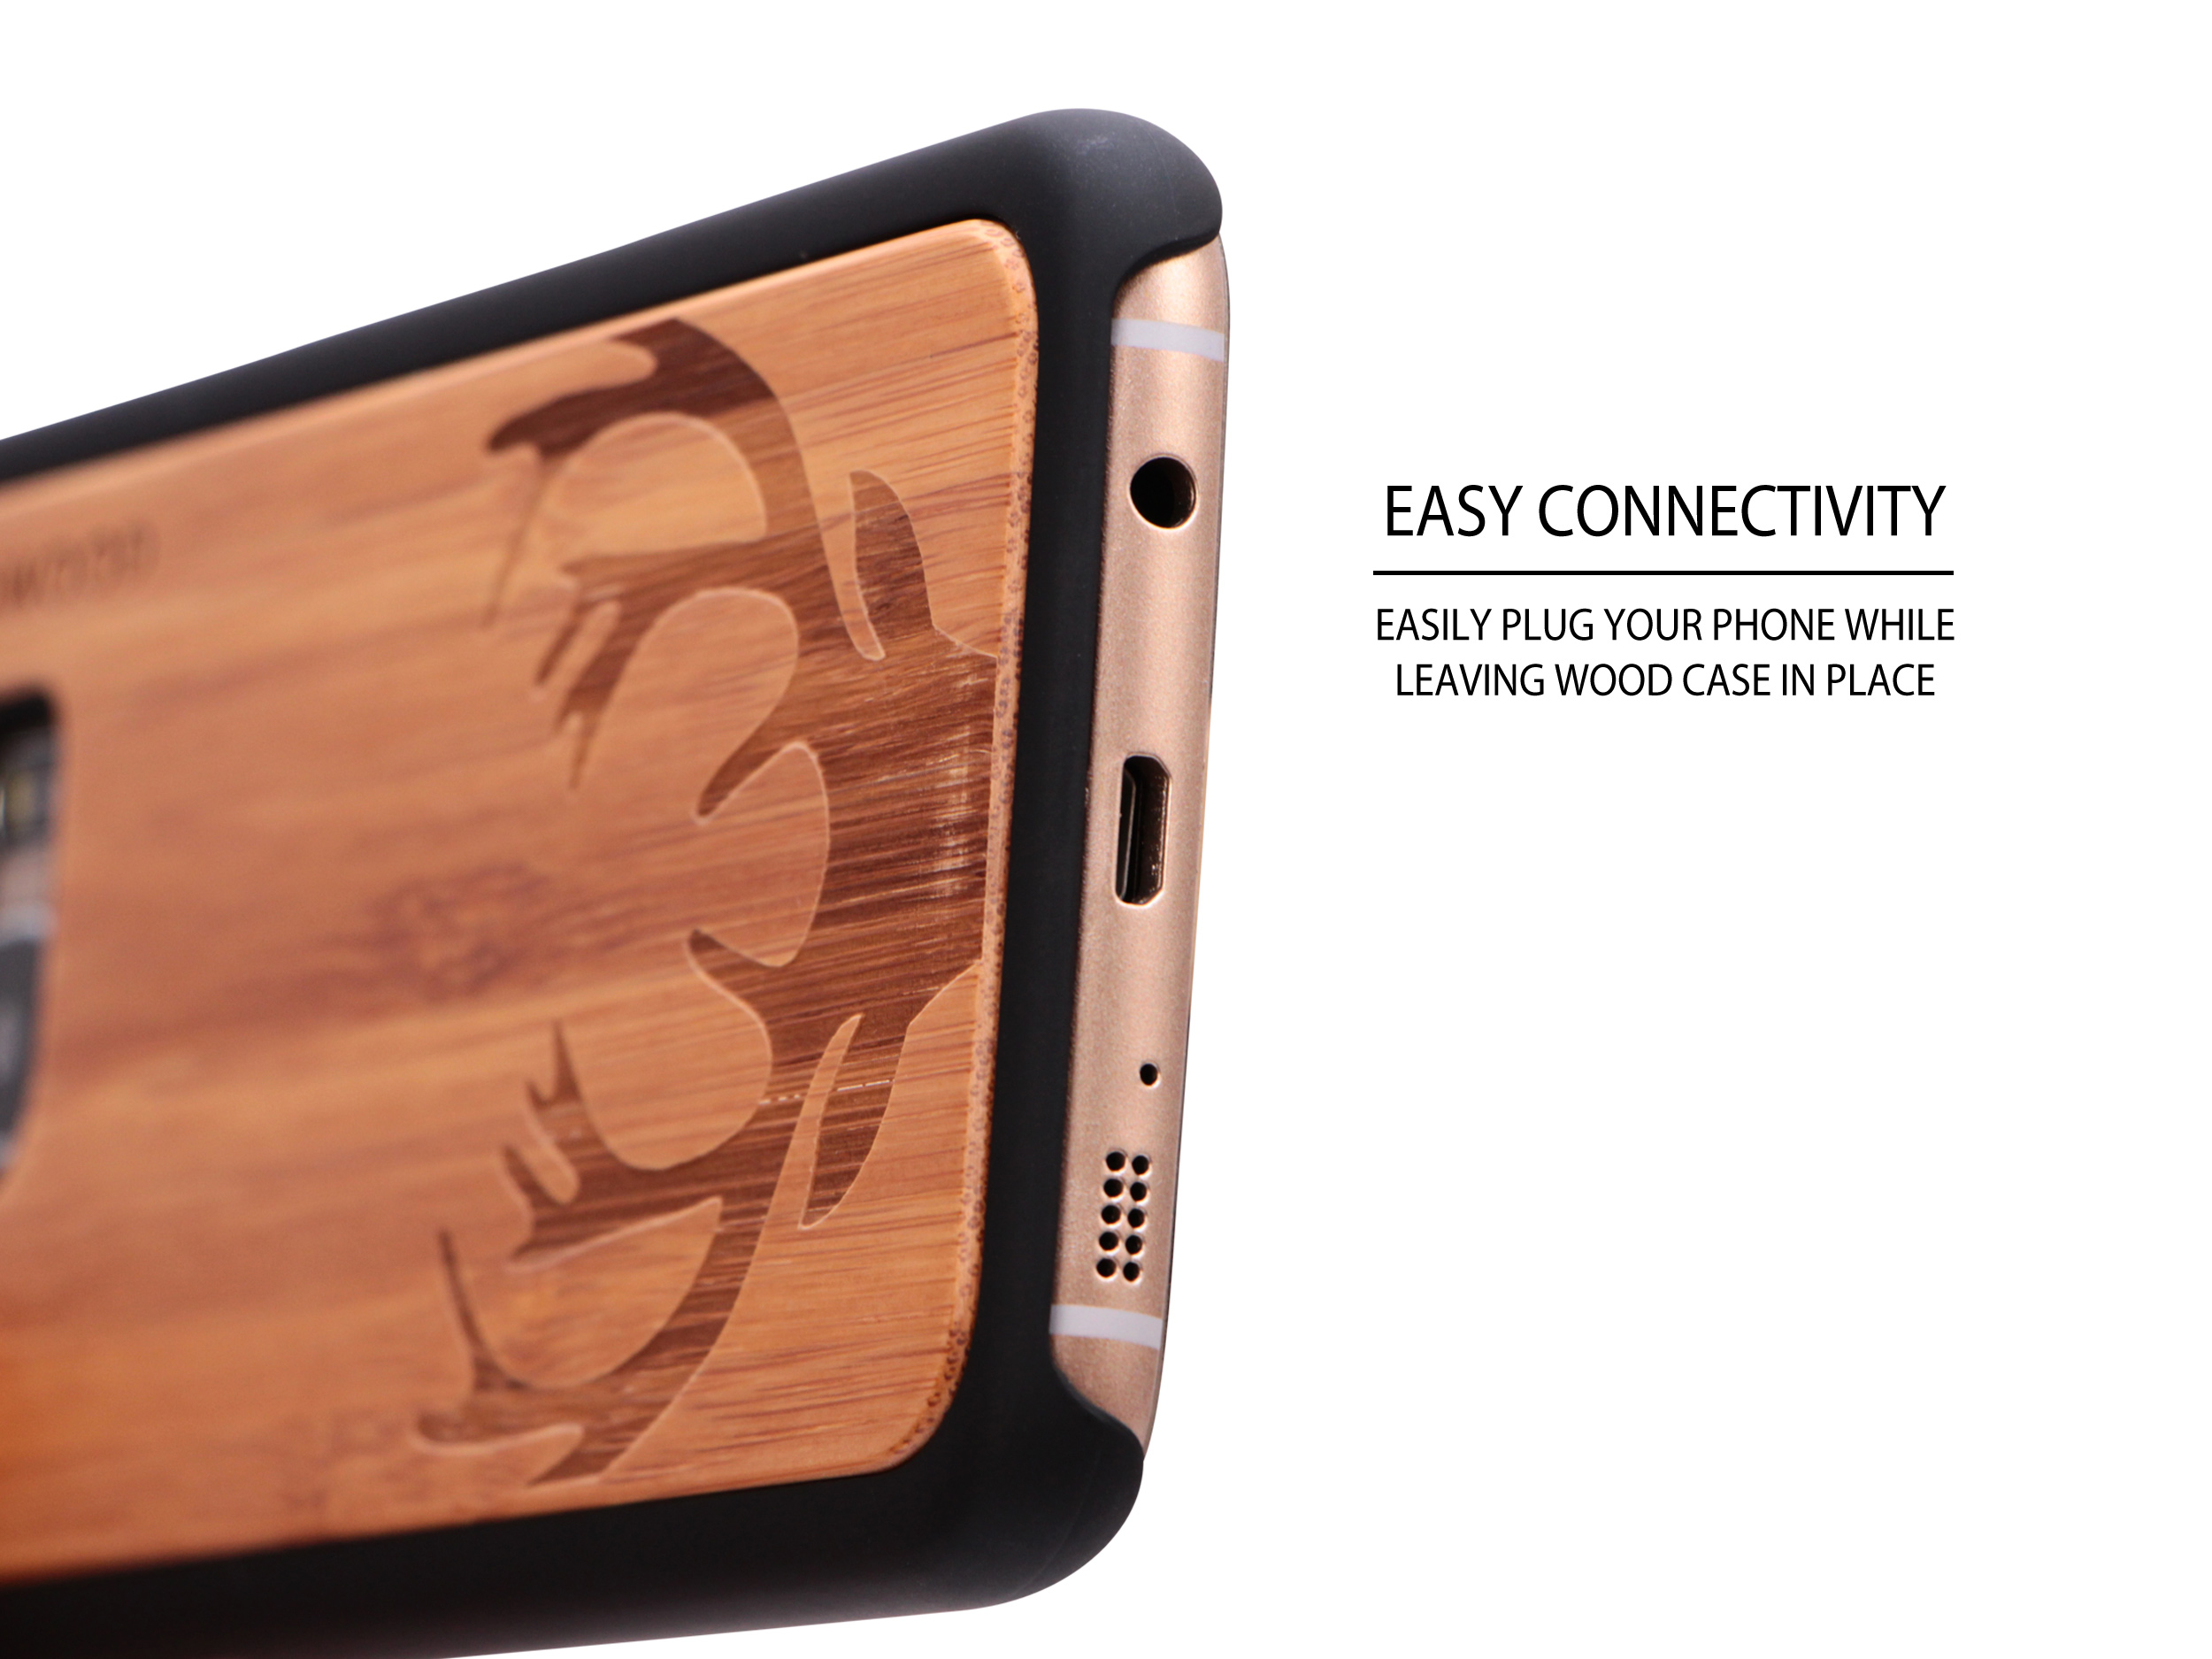 Samsung Galaxy S7 Edge wood case deer socket